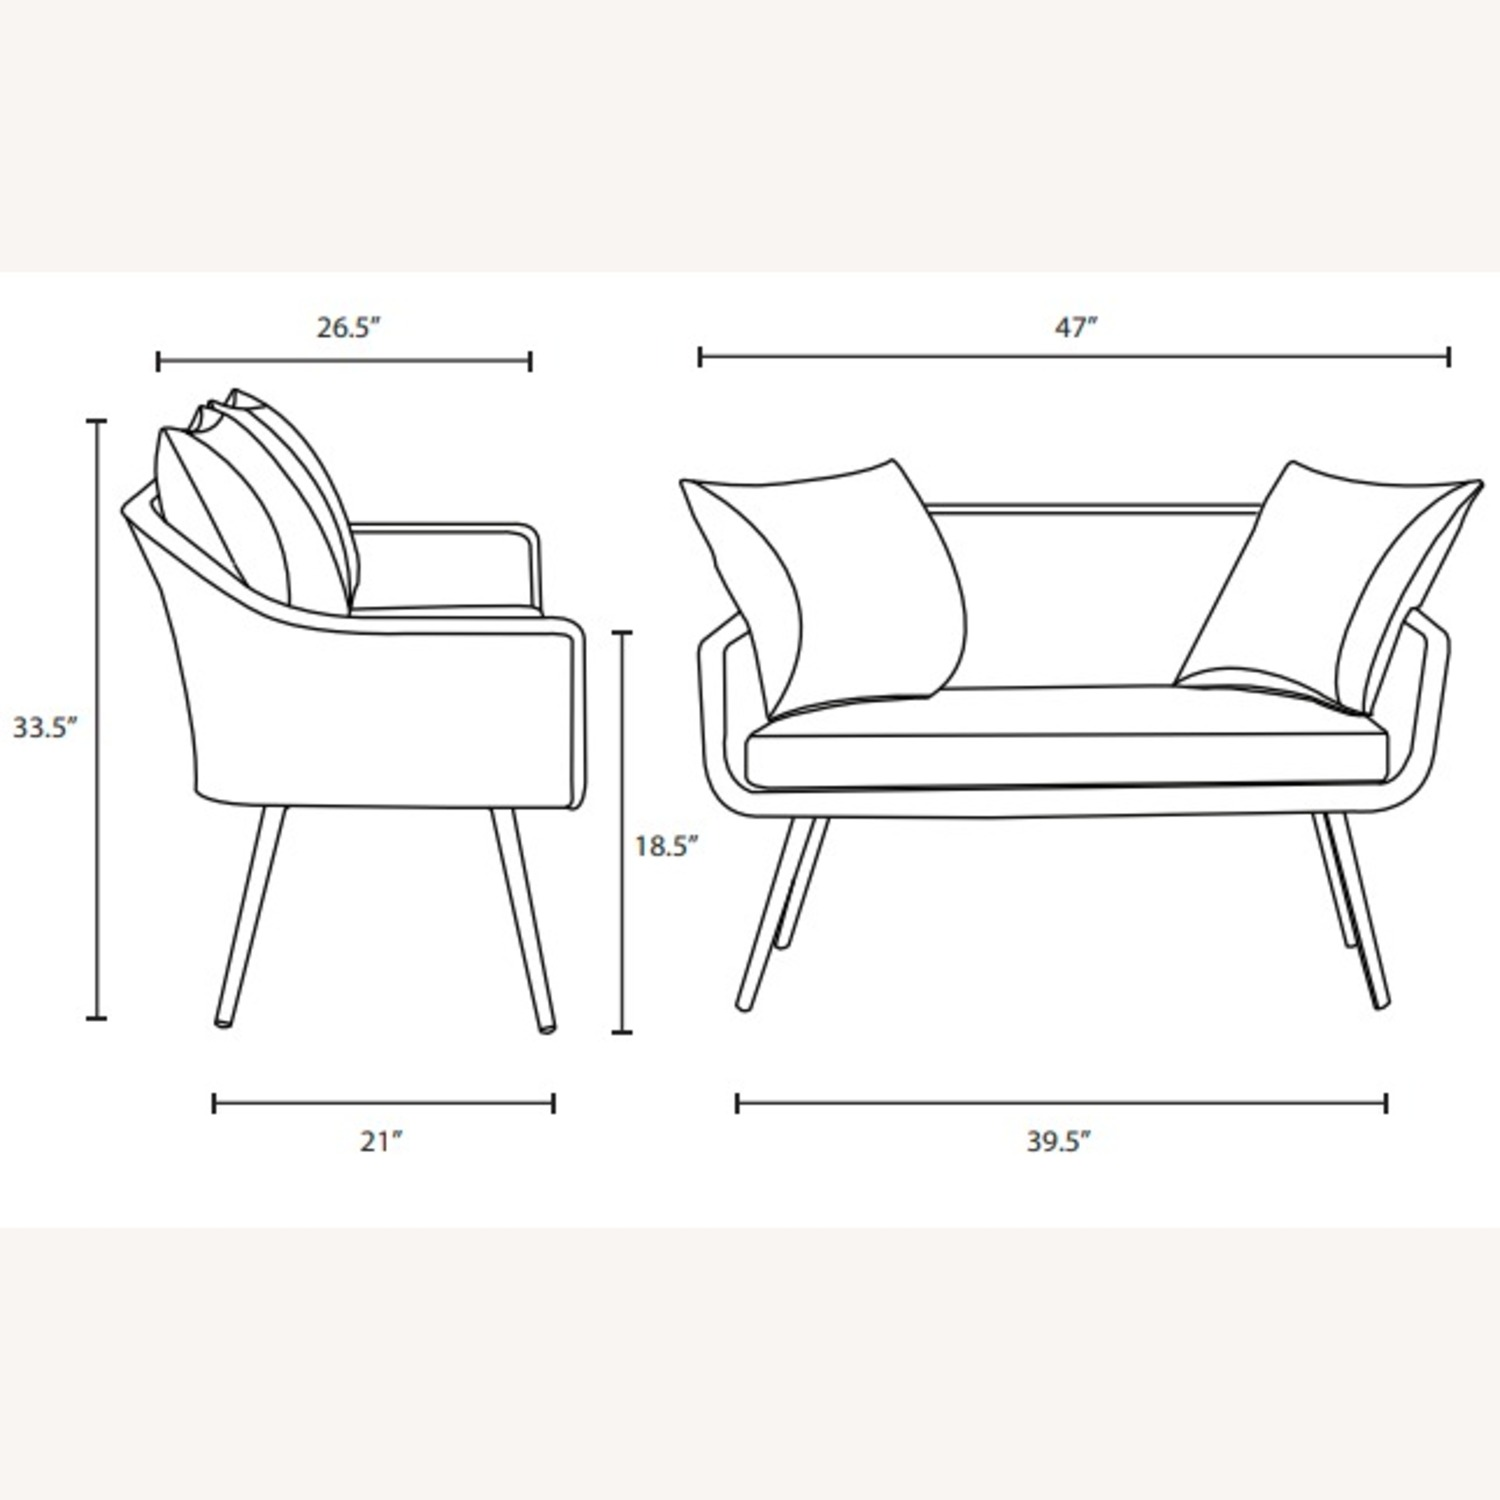 Outdoor Loveseat In Gray-On-Gray Tone Finish - image-5